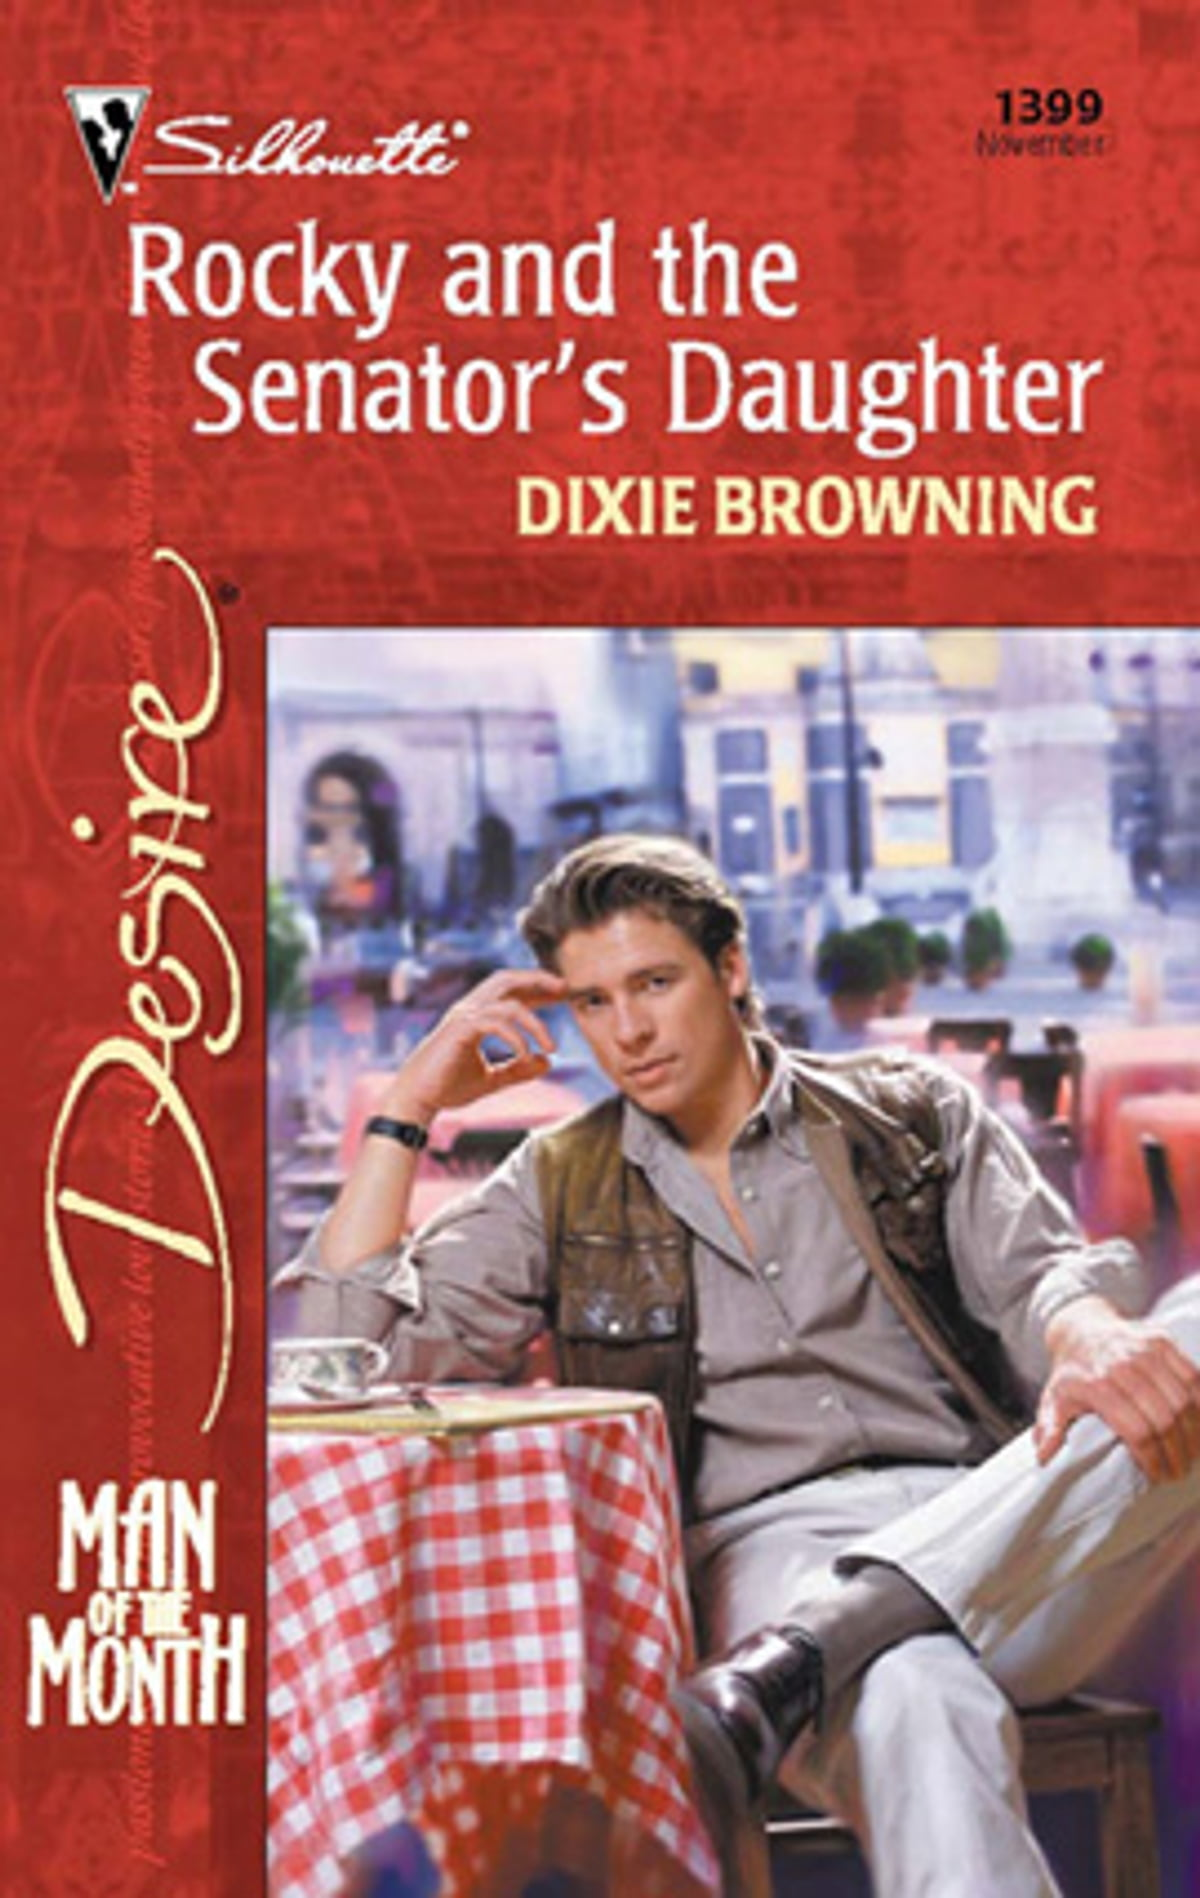 Rocky and the senators daughter ebook by dixie browning rocky and the senators daughter ebook by dixie browning 9781459203143 rakuten kobo fandeluxe Ebook collections